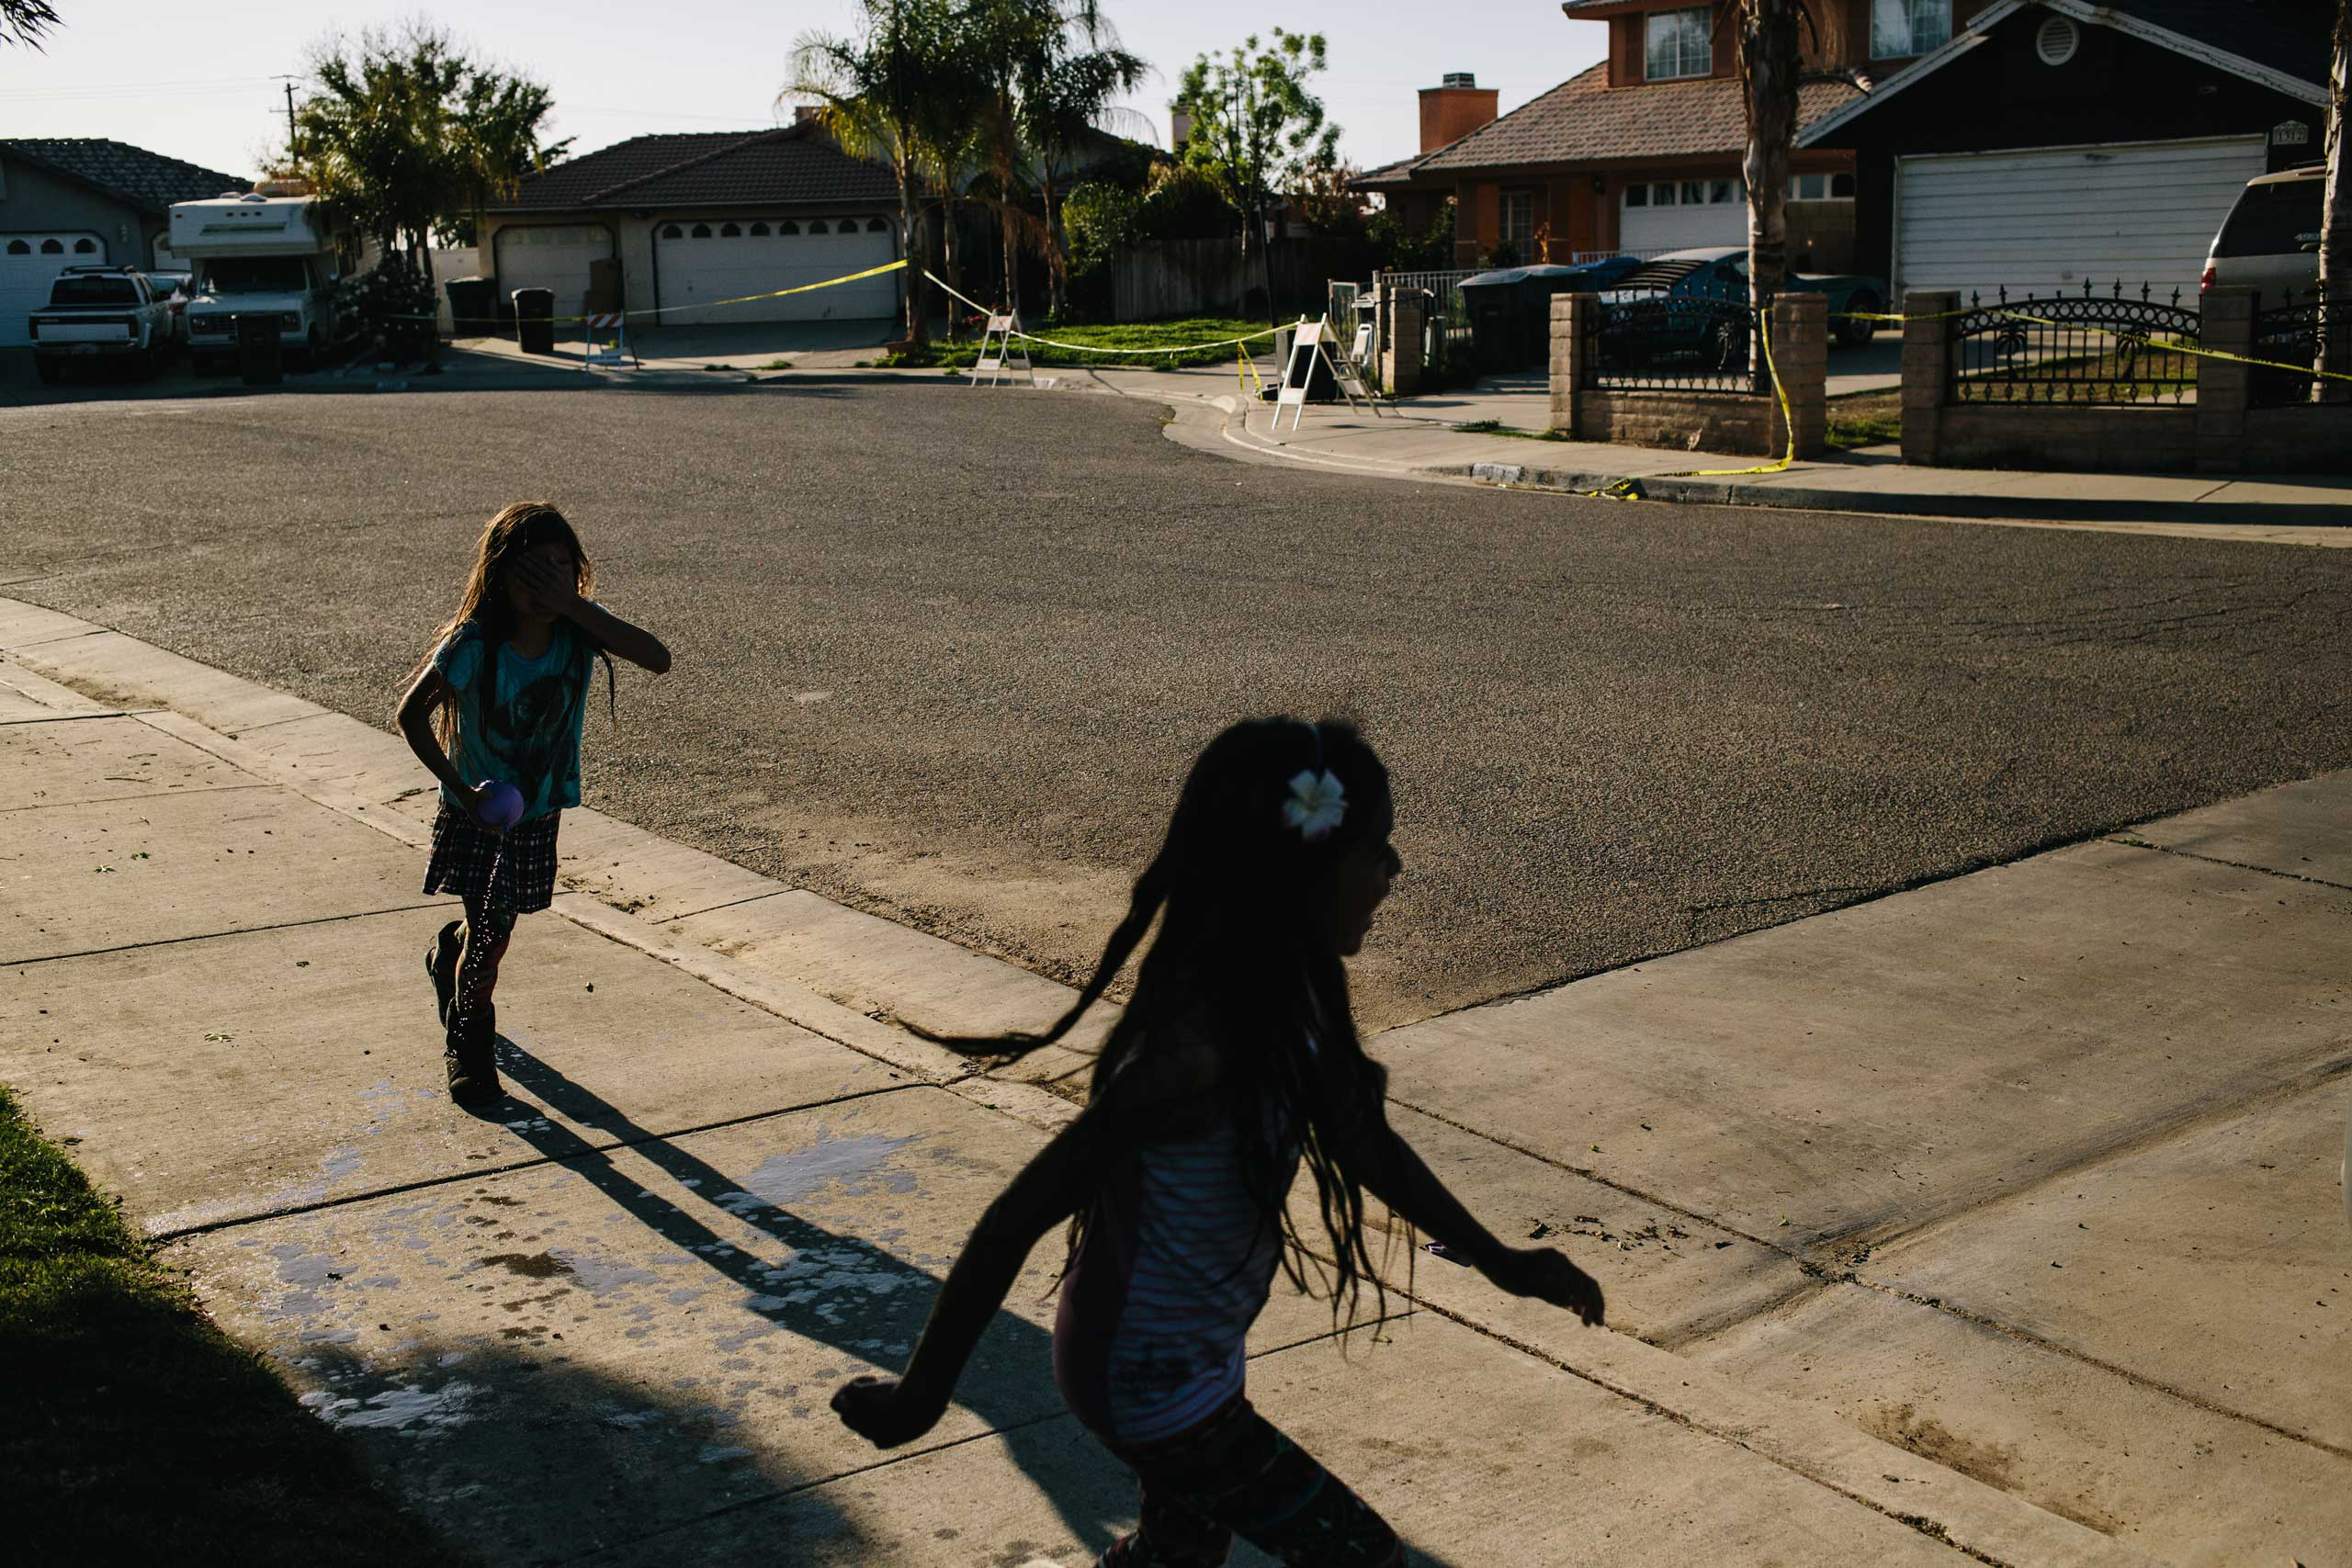 Samantha Olivarez, 9, left, and her cousin, Daisy Olivarez, 7, play in front of their home in Arvin, Calif. The homes across the street were evacuated after a gas pipe leaked underground. According to reports, the 40-year-old pipe was leaking for as long as two years before it was detected. Olivarez's family is worried about possible health risks in the area due to the pollution.